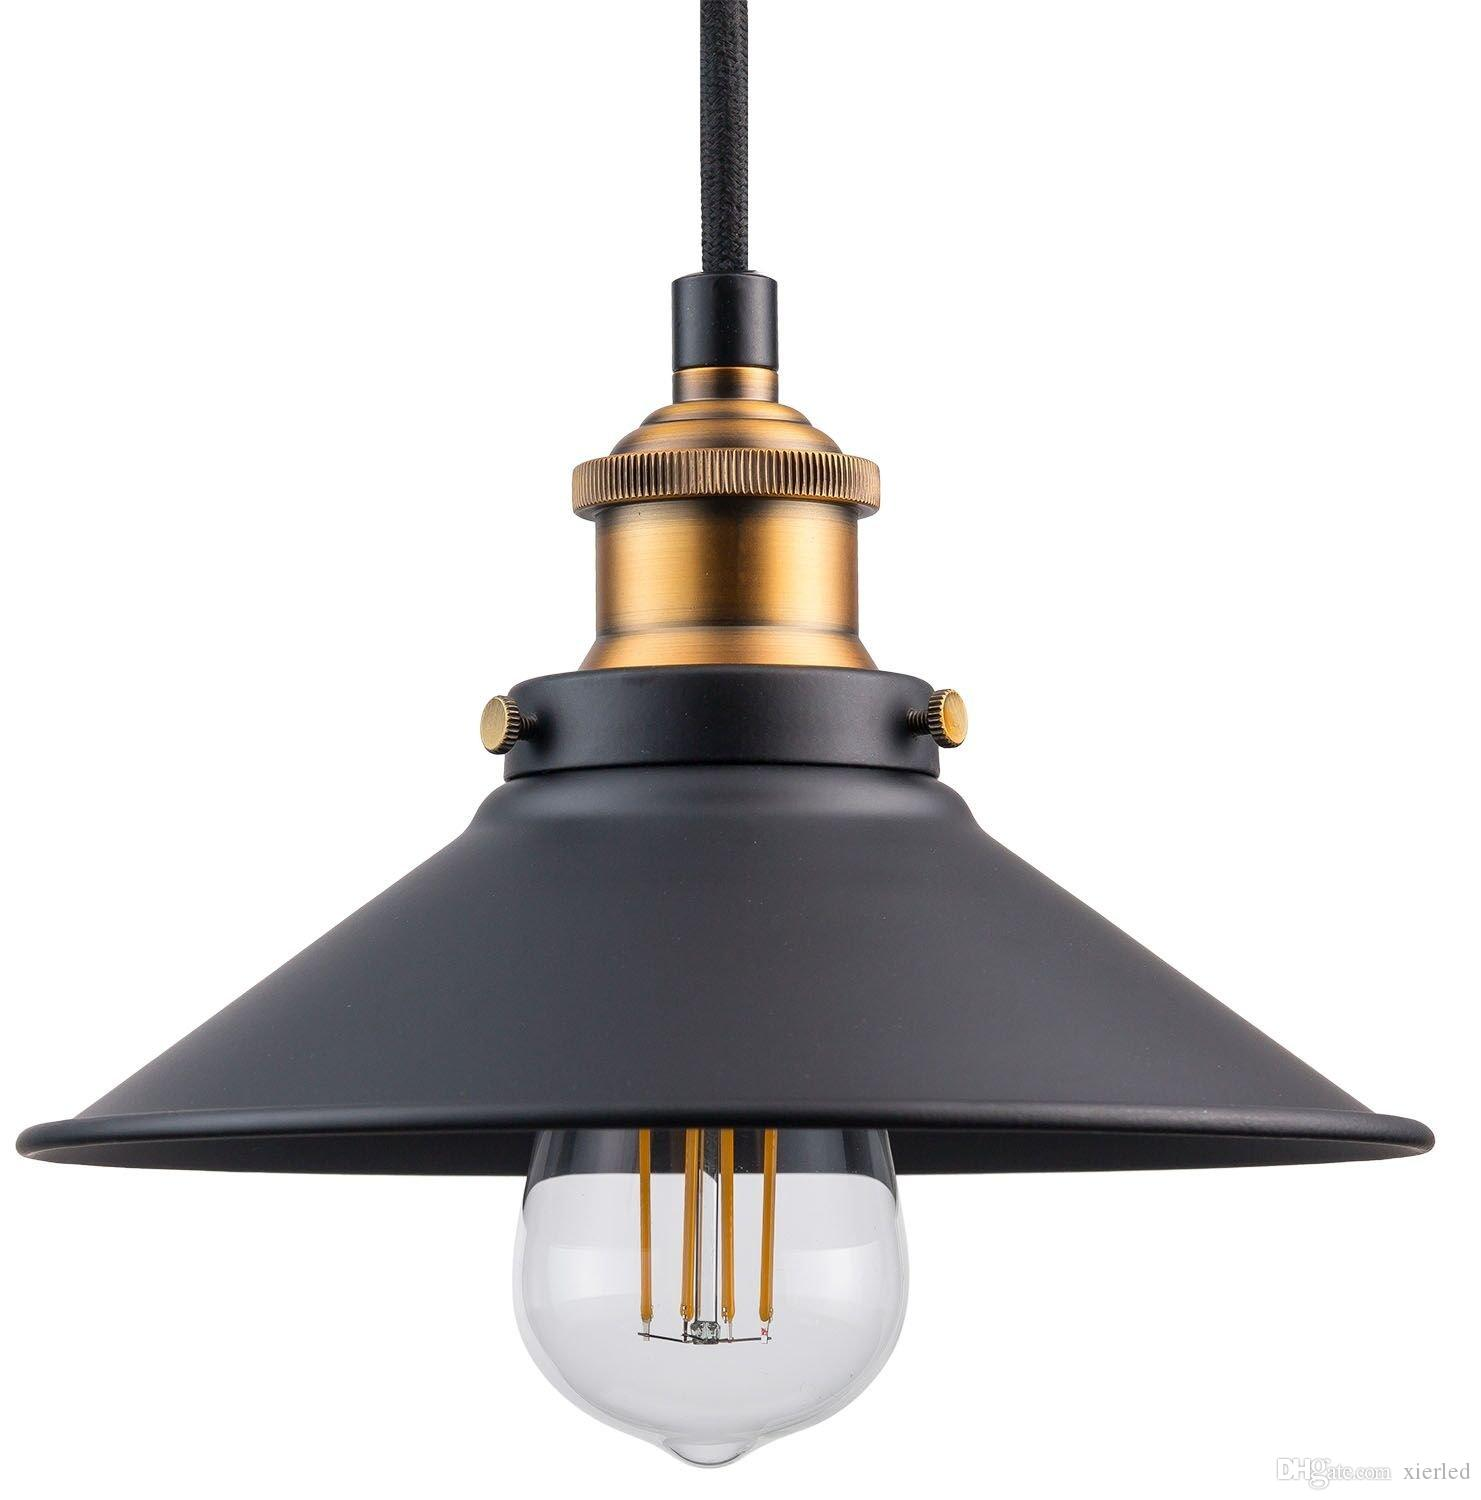 led ie light leovan bulb en lights pendant